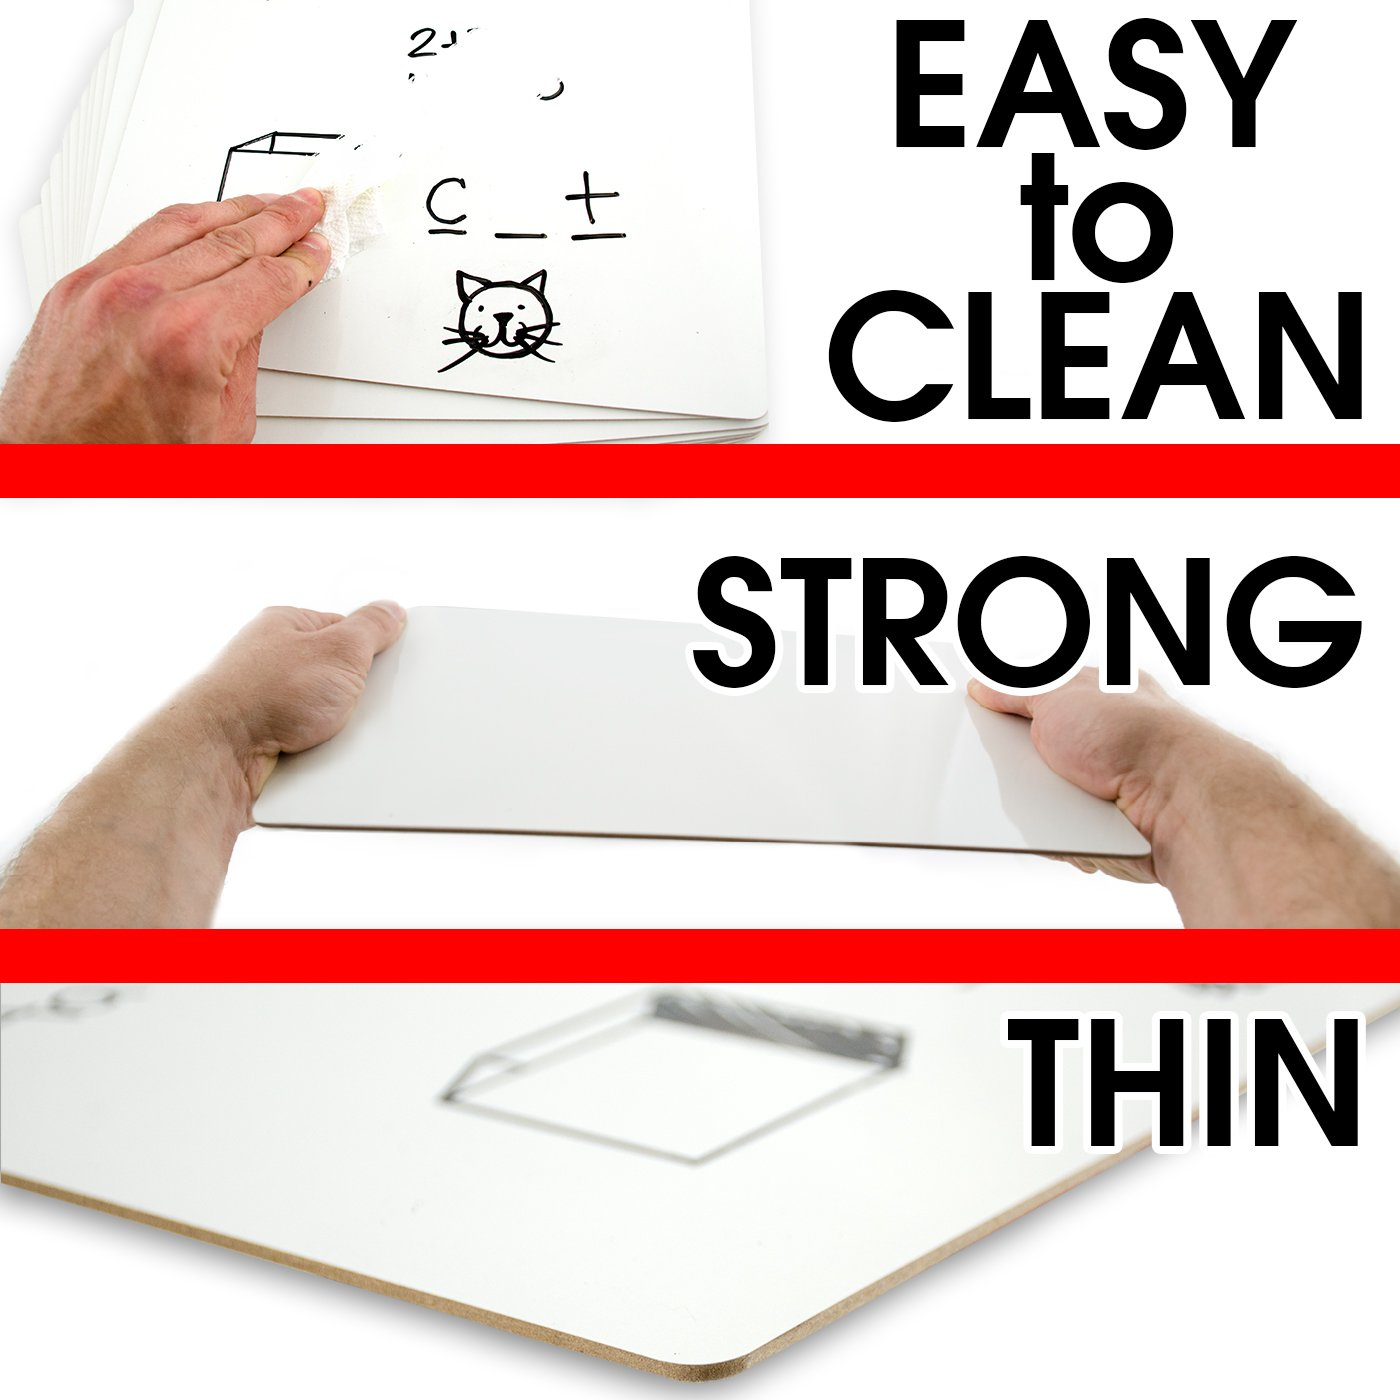 Dry Erase Lapboards | 9 x 12 inch Large Whiteboard | Pack of 25 White Board Set | Great for Teachers, Students, Children, Classroom | Reusable, Durable, Portable, Single Sided Whiteboard (25 Pack) by Board Geeks (Image #3)